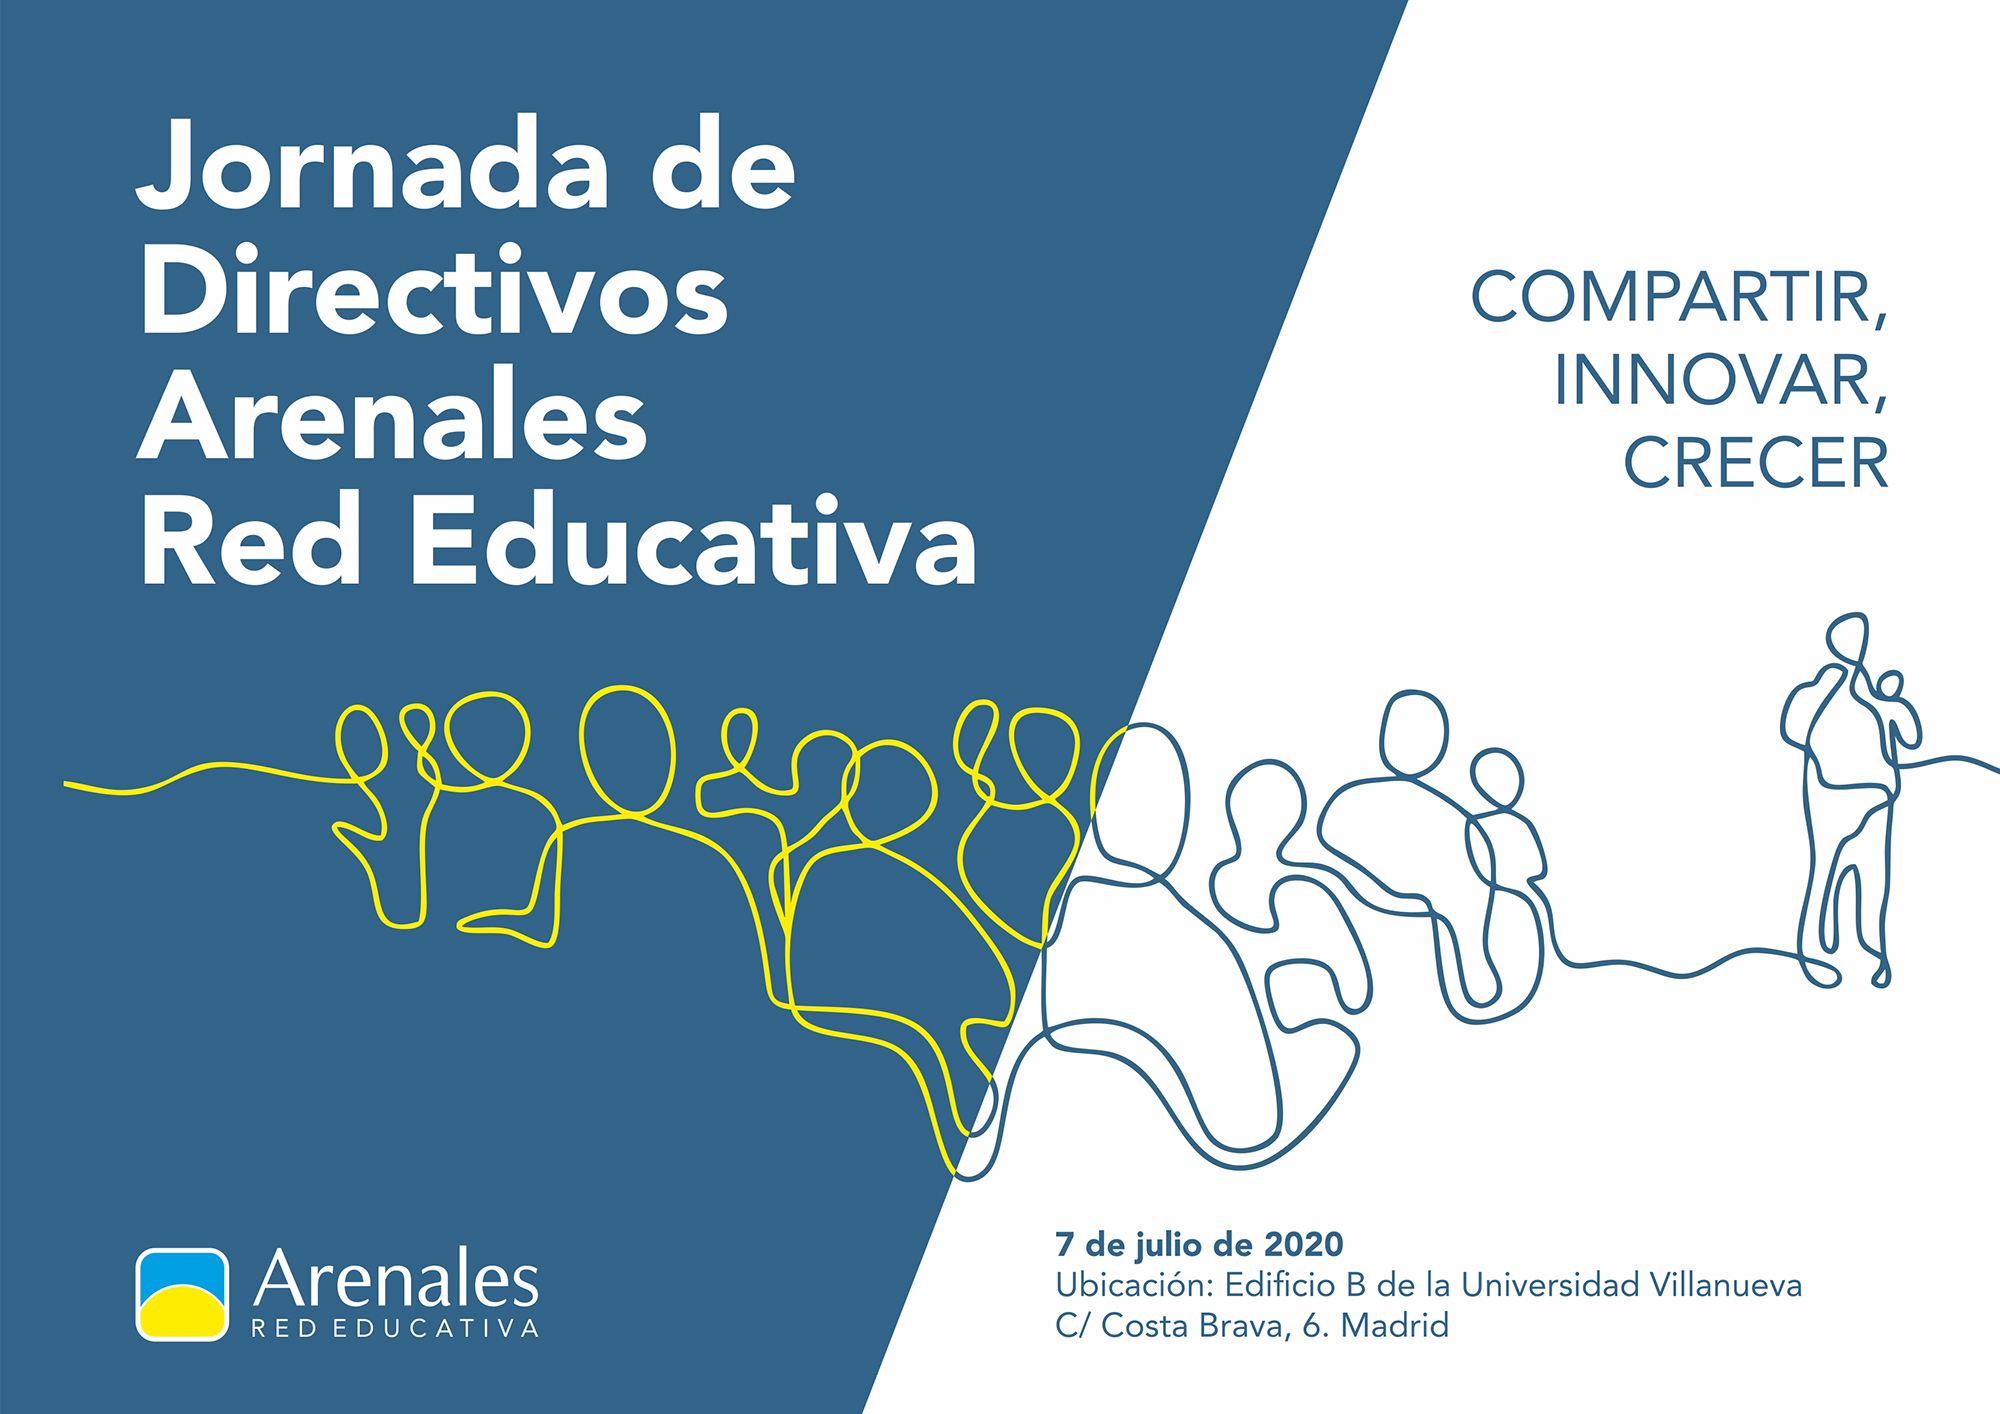 Arenales Red Educativa